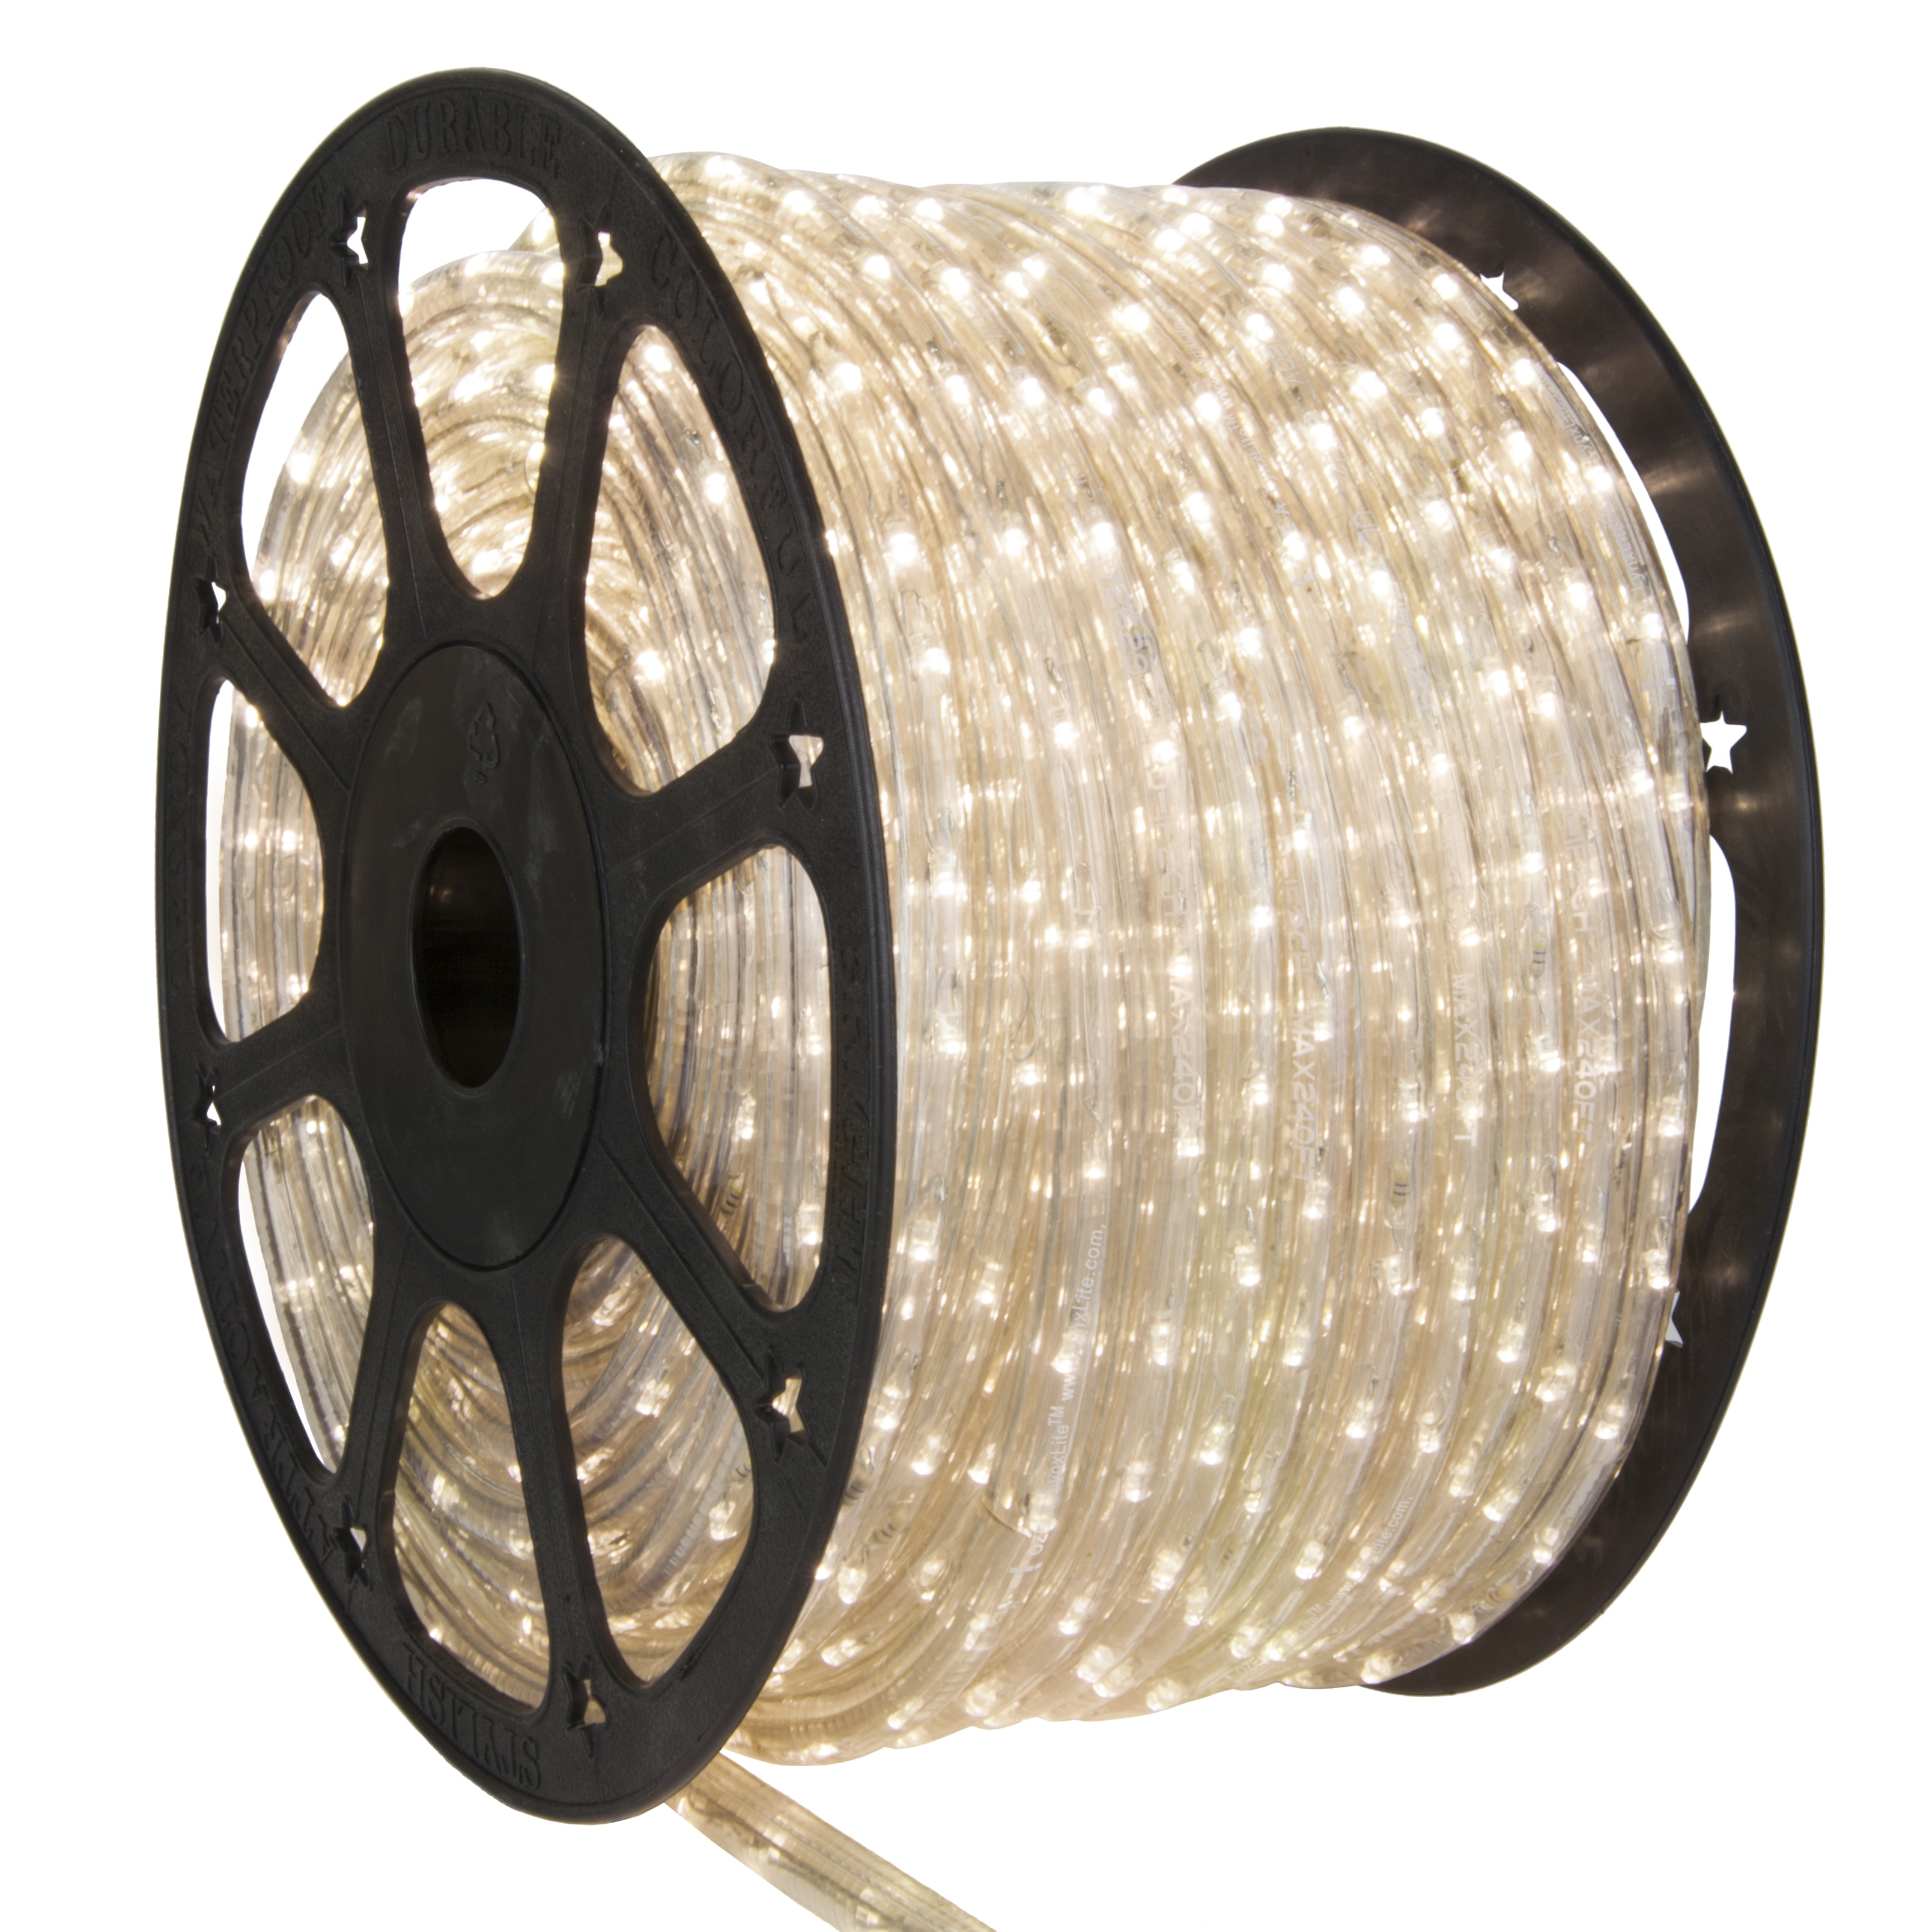 Warm White LED Rope Light Spool